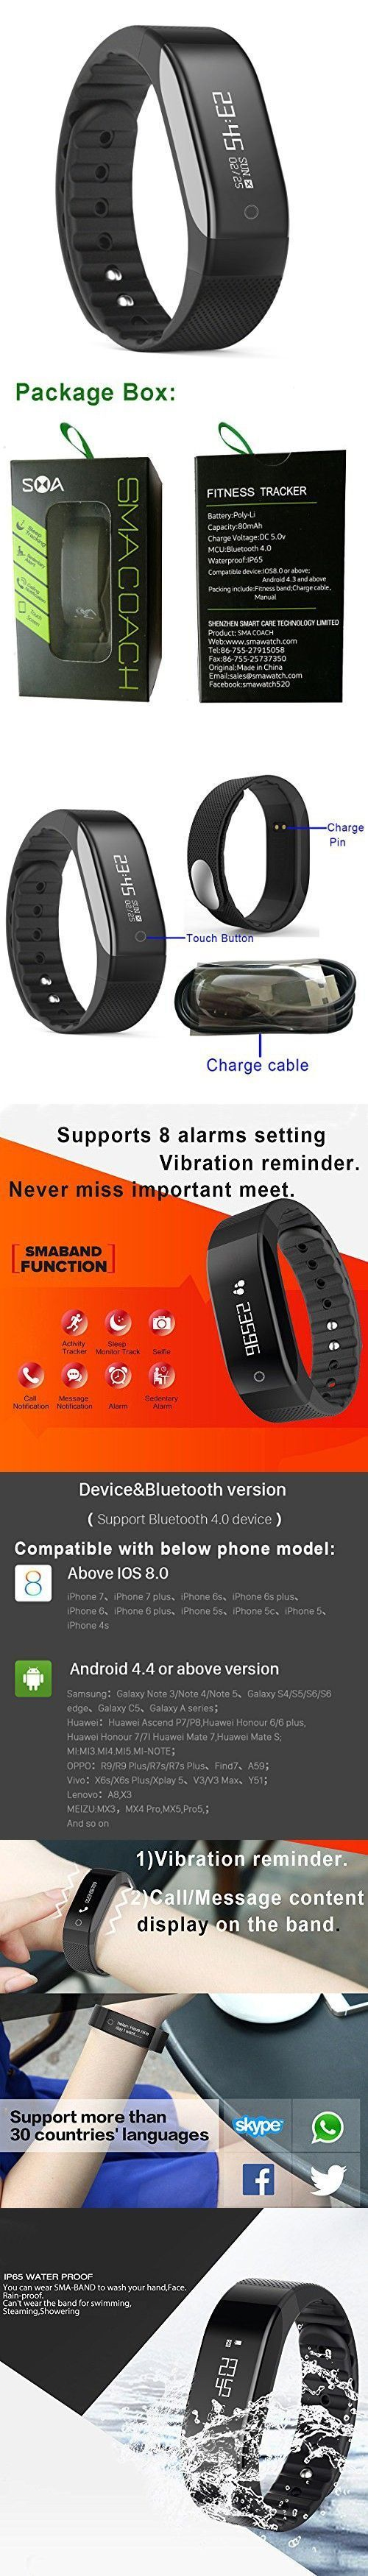 sma fitness tracker watch ip65 waterproof sports activity bracelet rh pinterest com 1995 Geo Tracker Manual Fitbit Tracker Manual